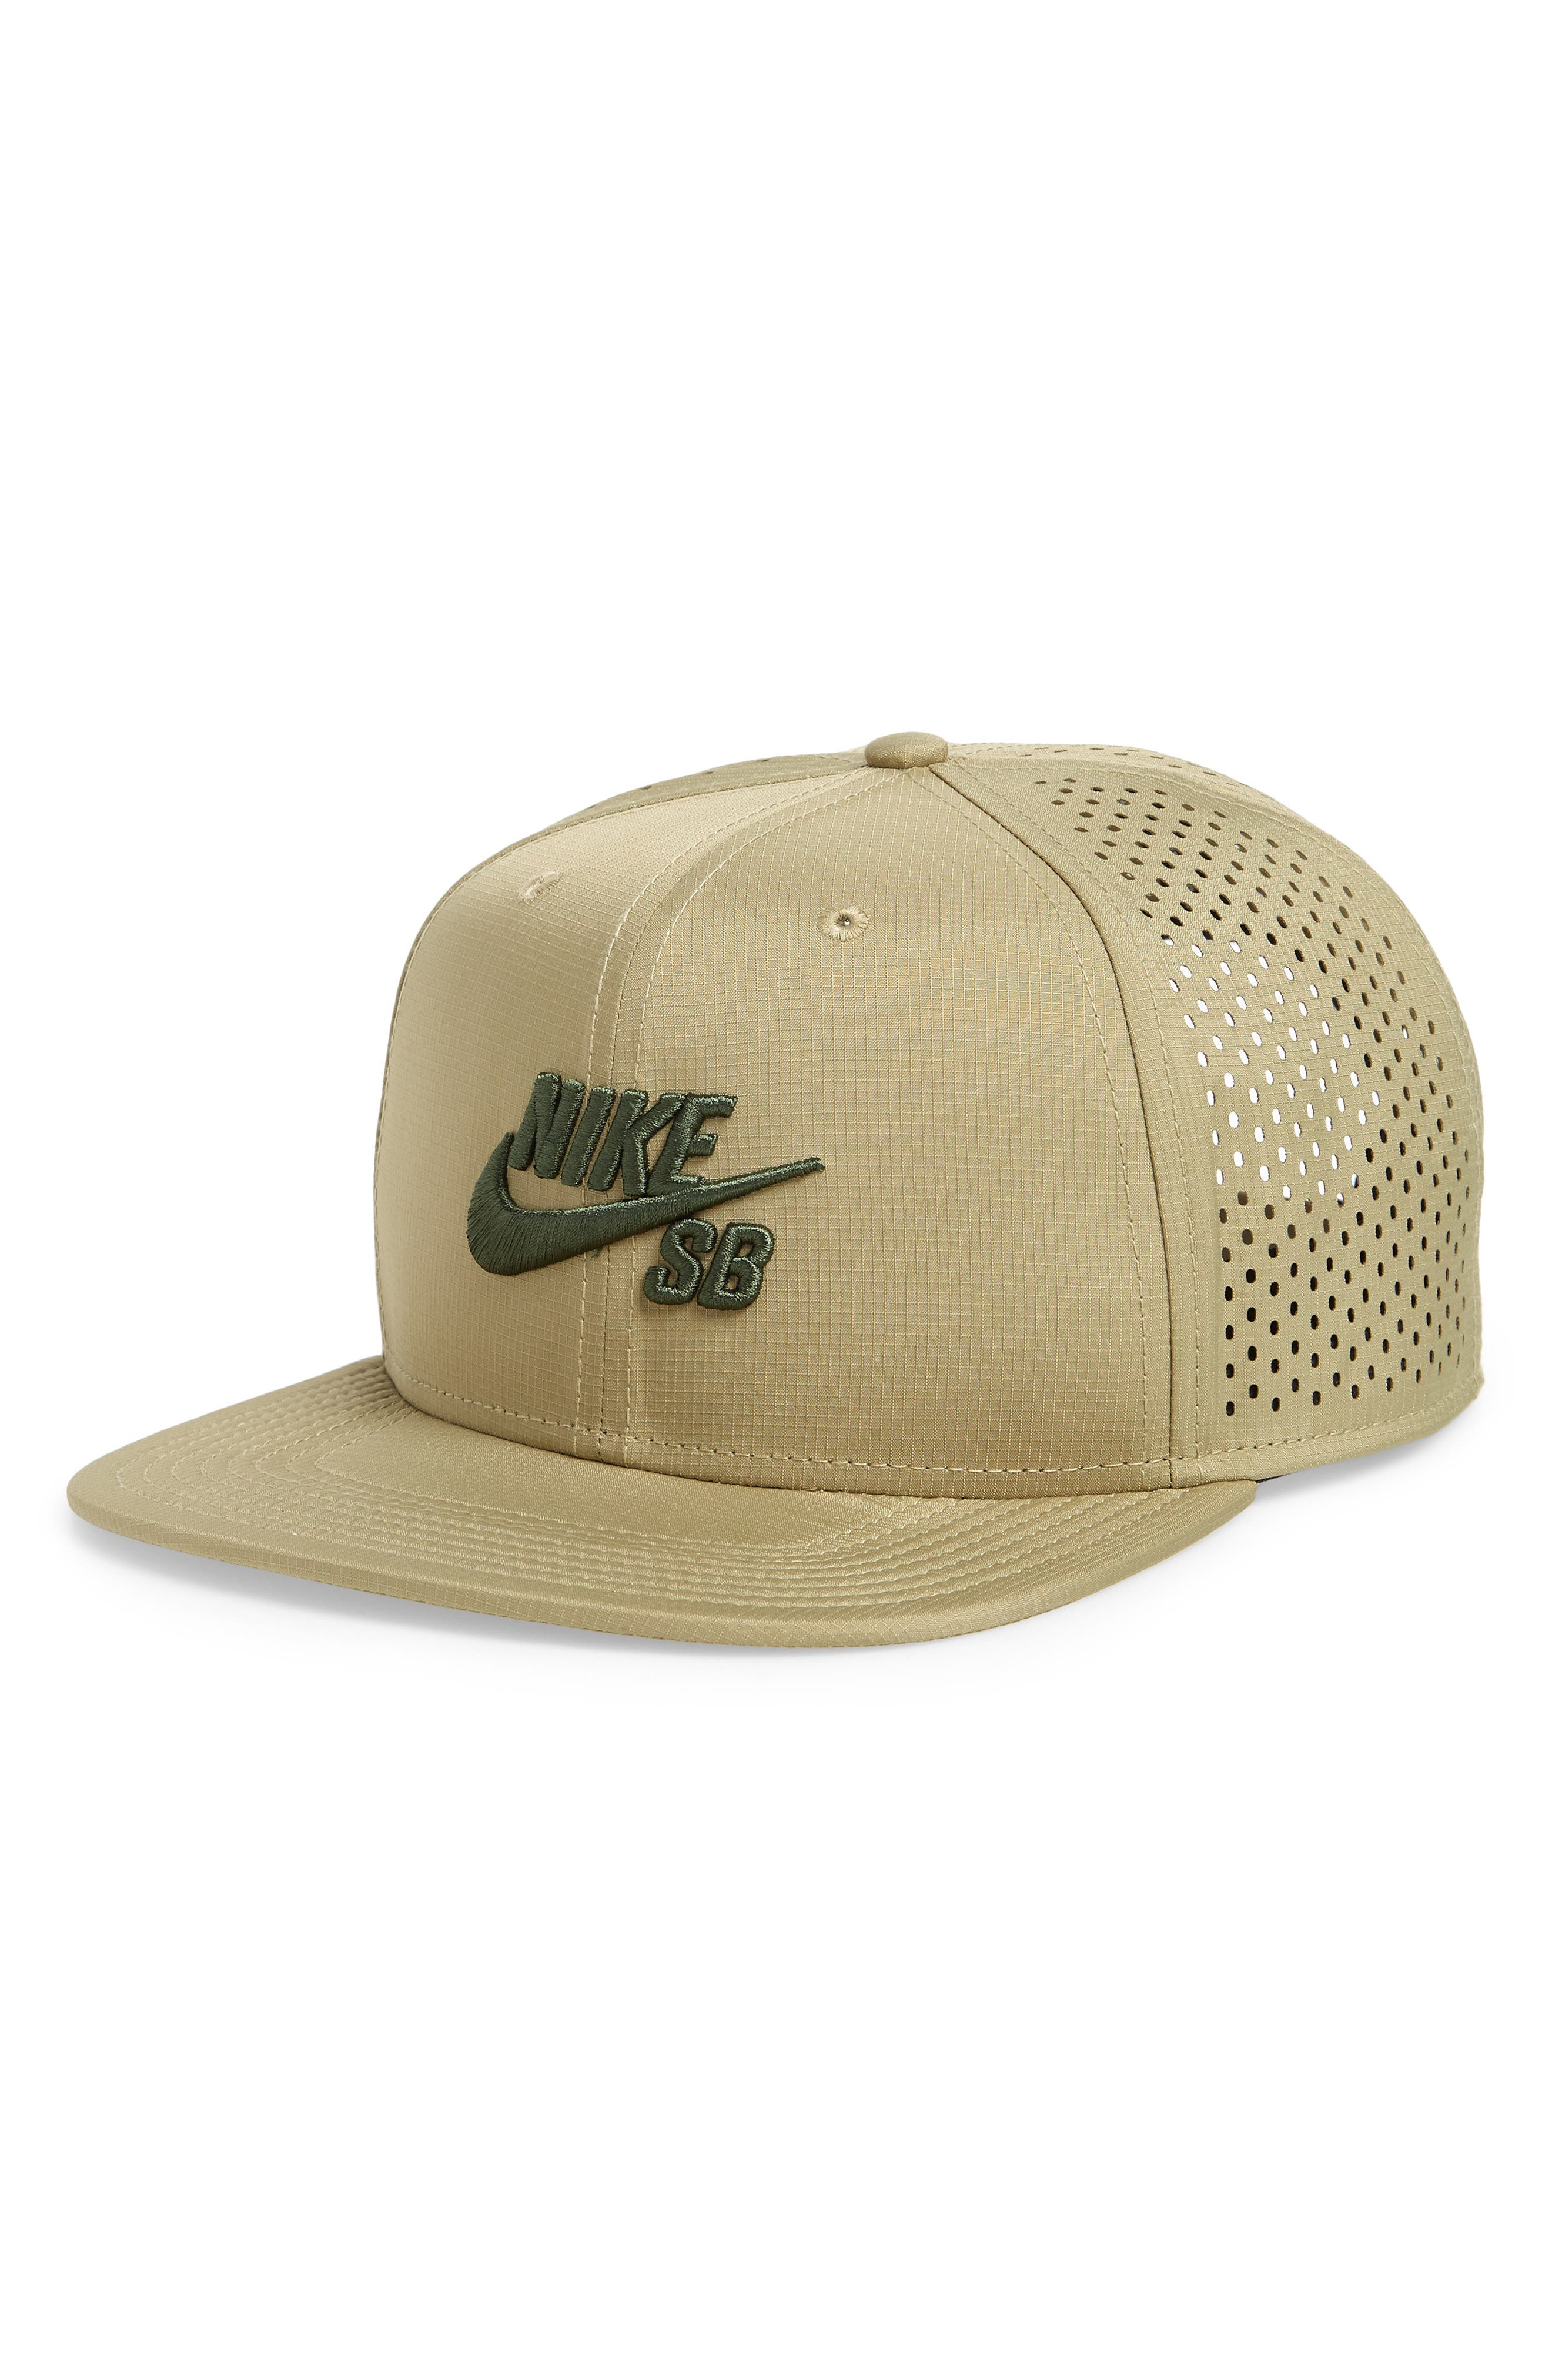 Performance Trucker Hat,                         Main,                         color, Neutral Olive/ Olive/ Sequoia